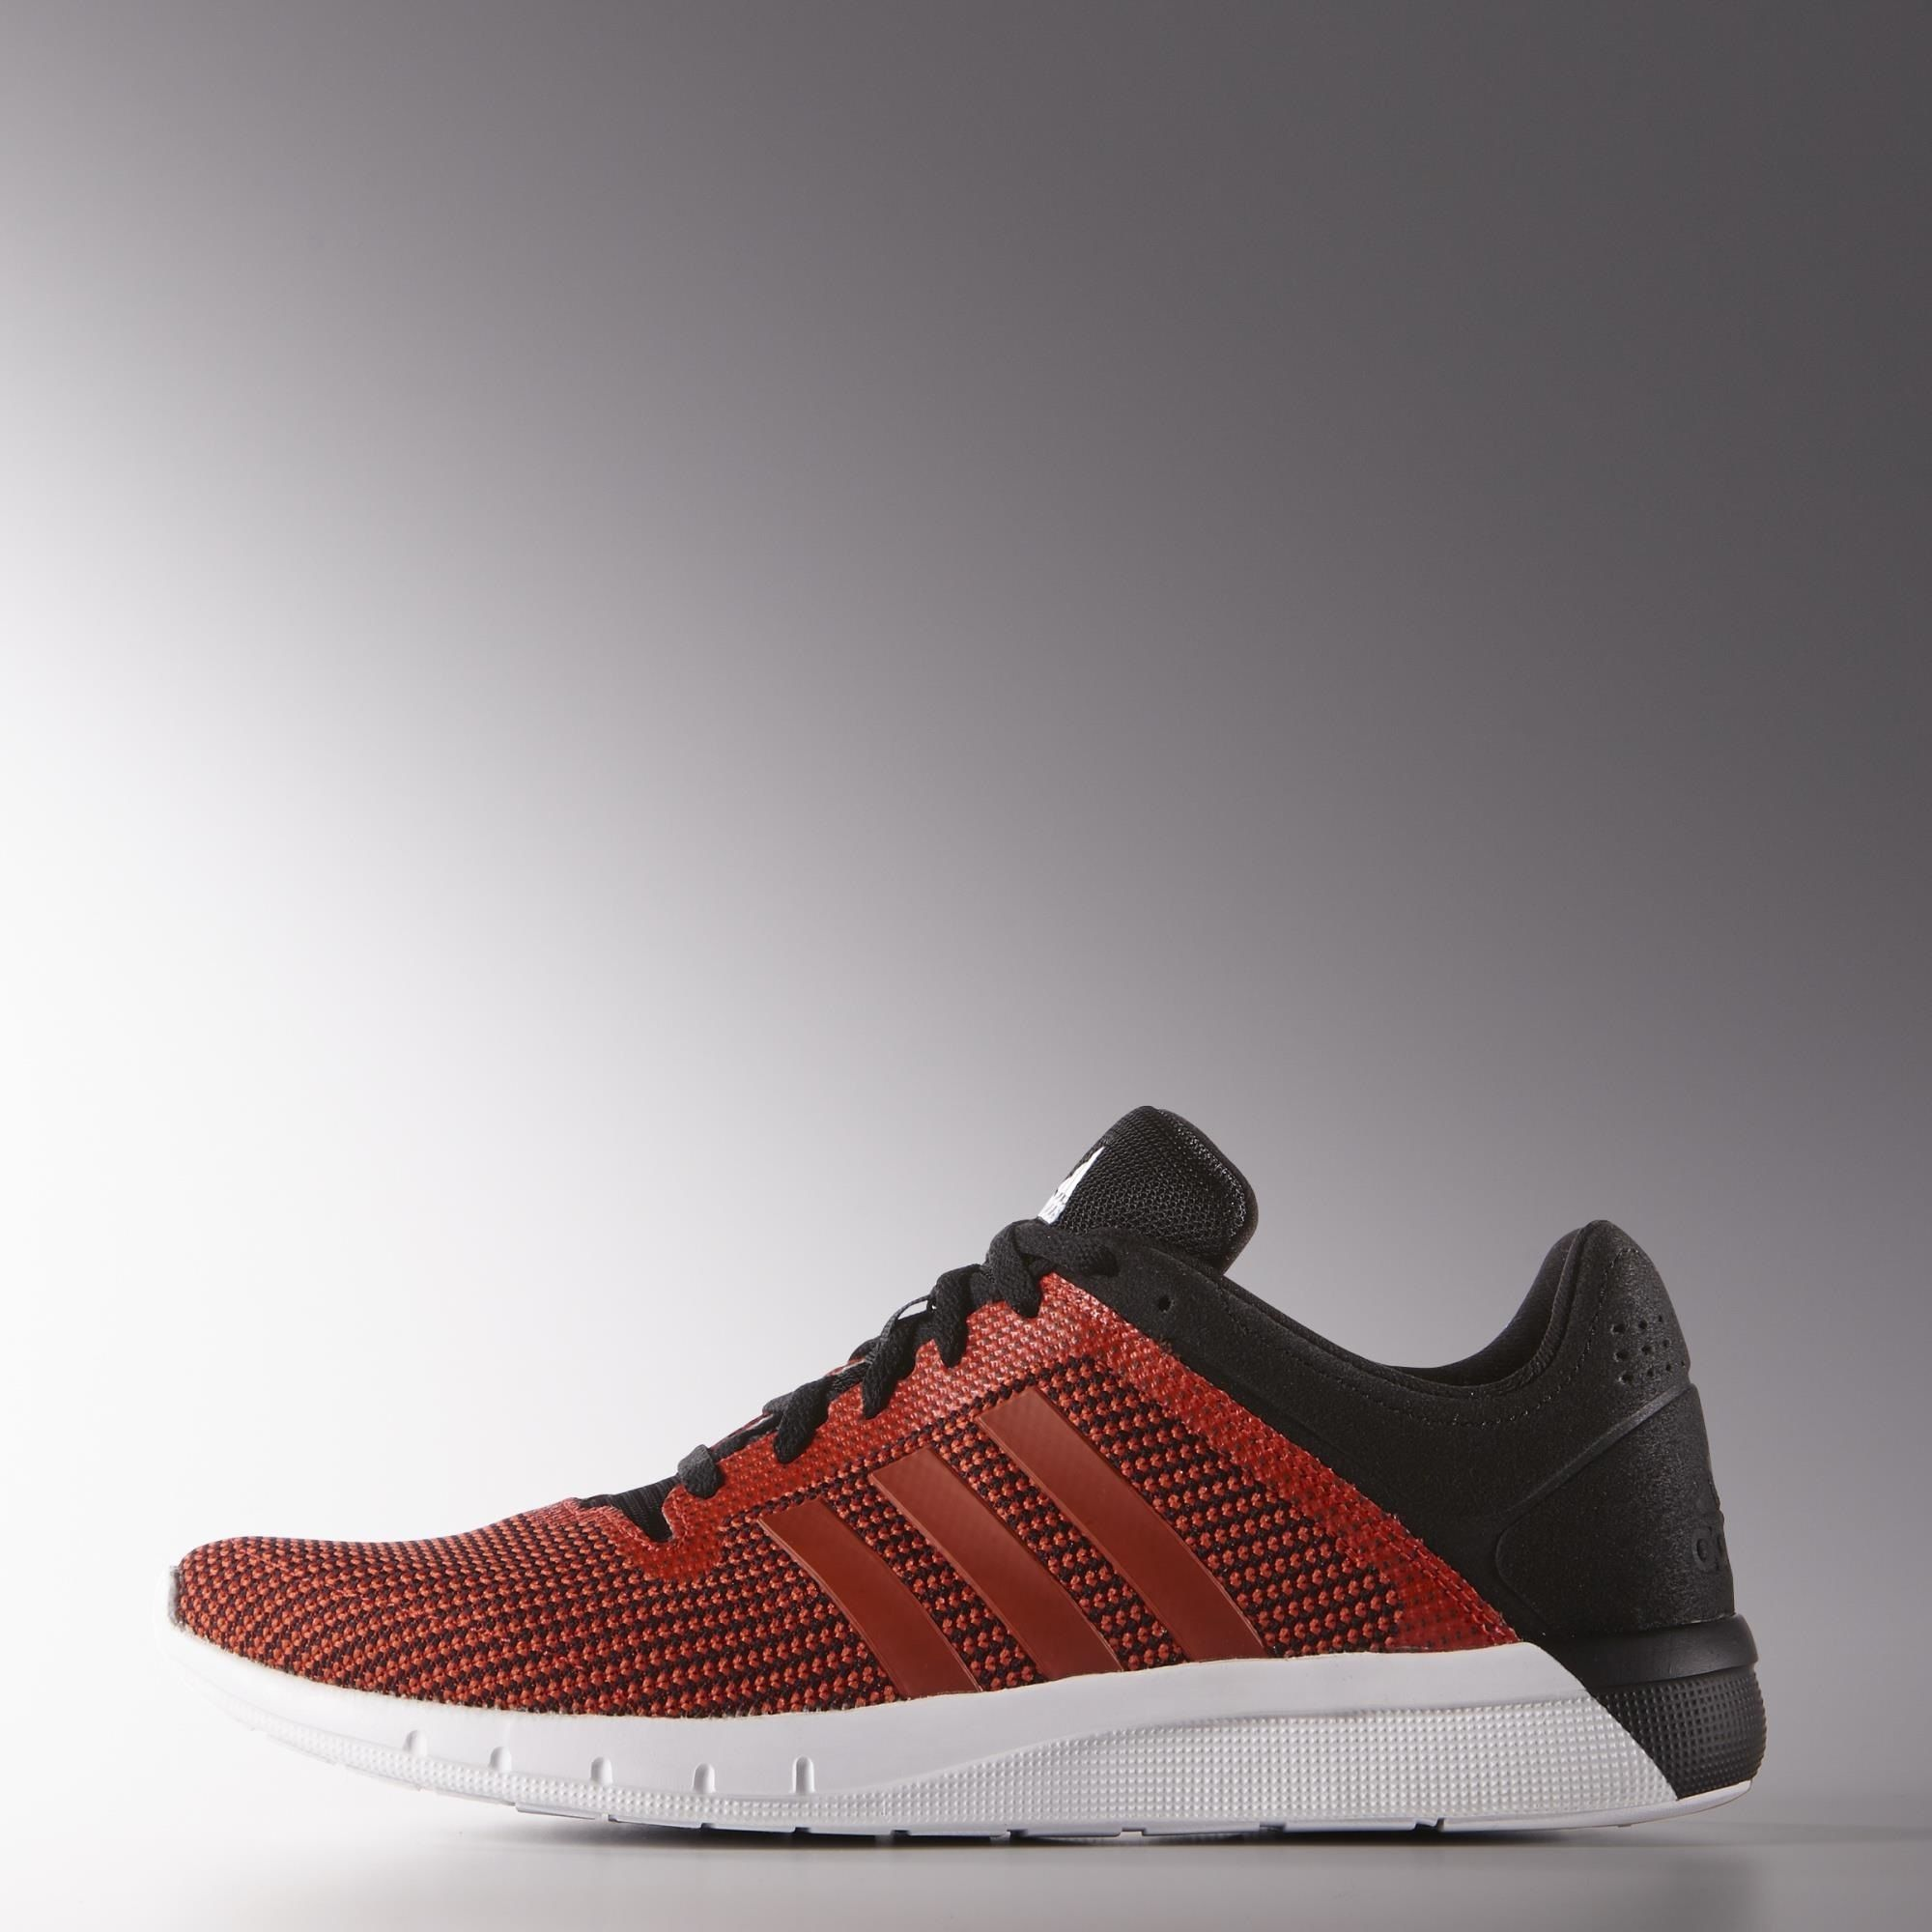 adidas climacool shoes orange